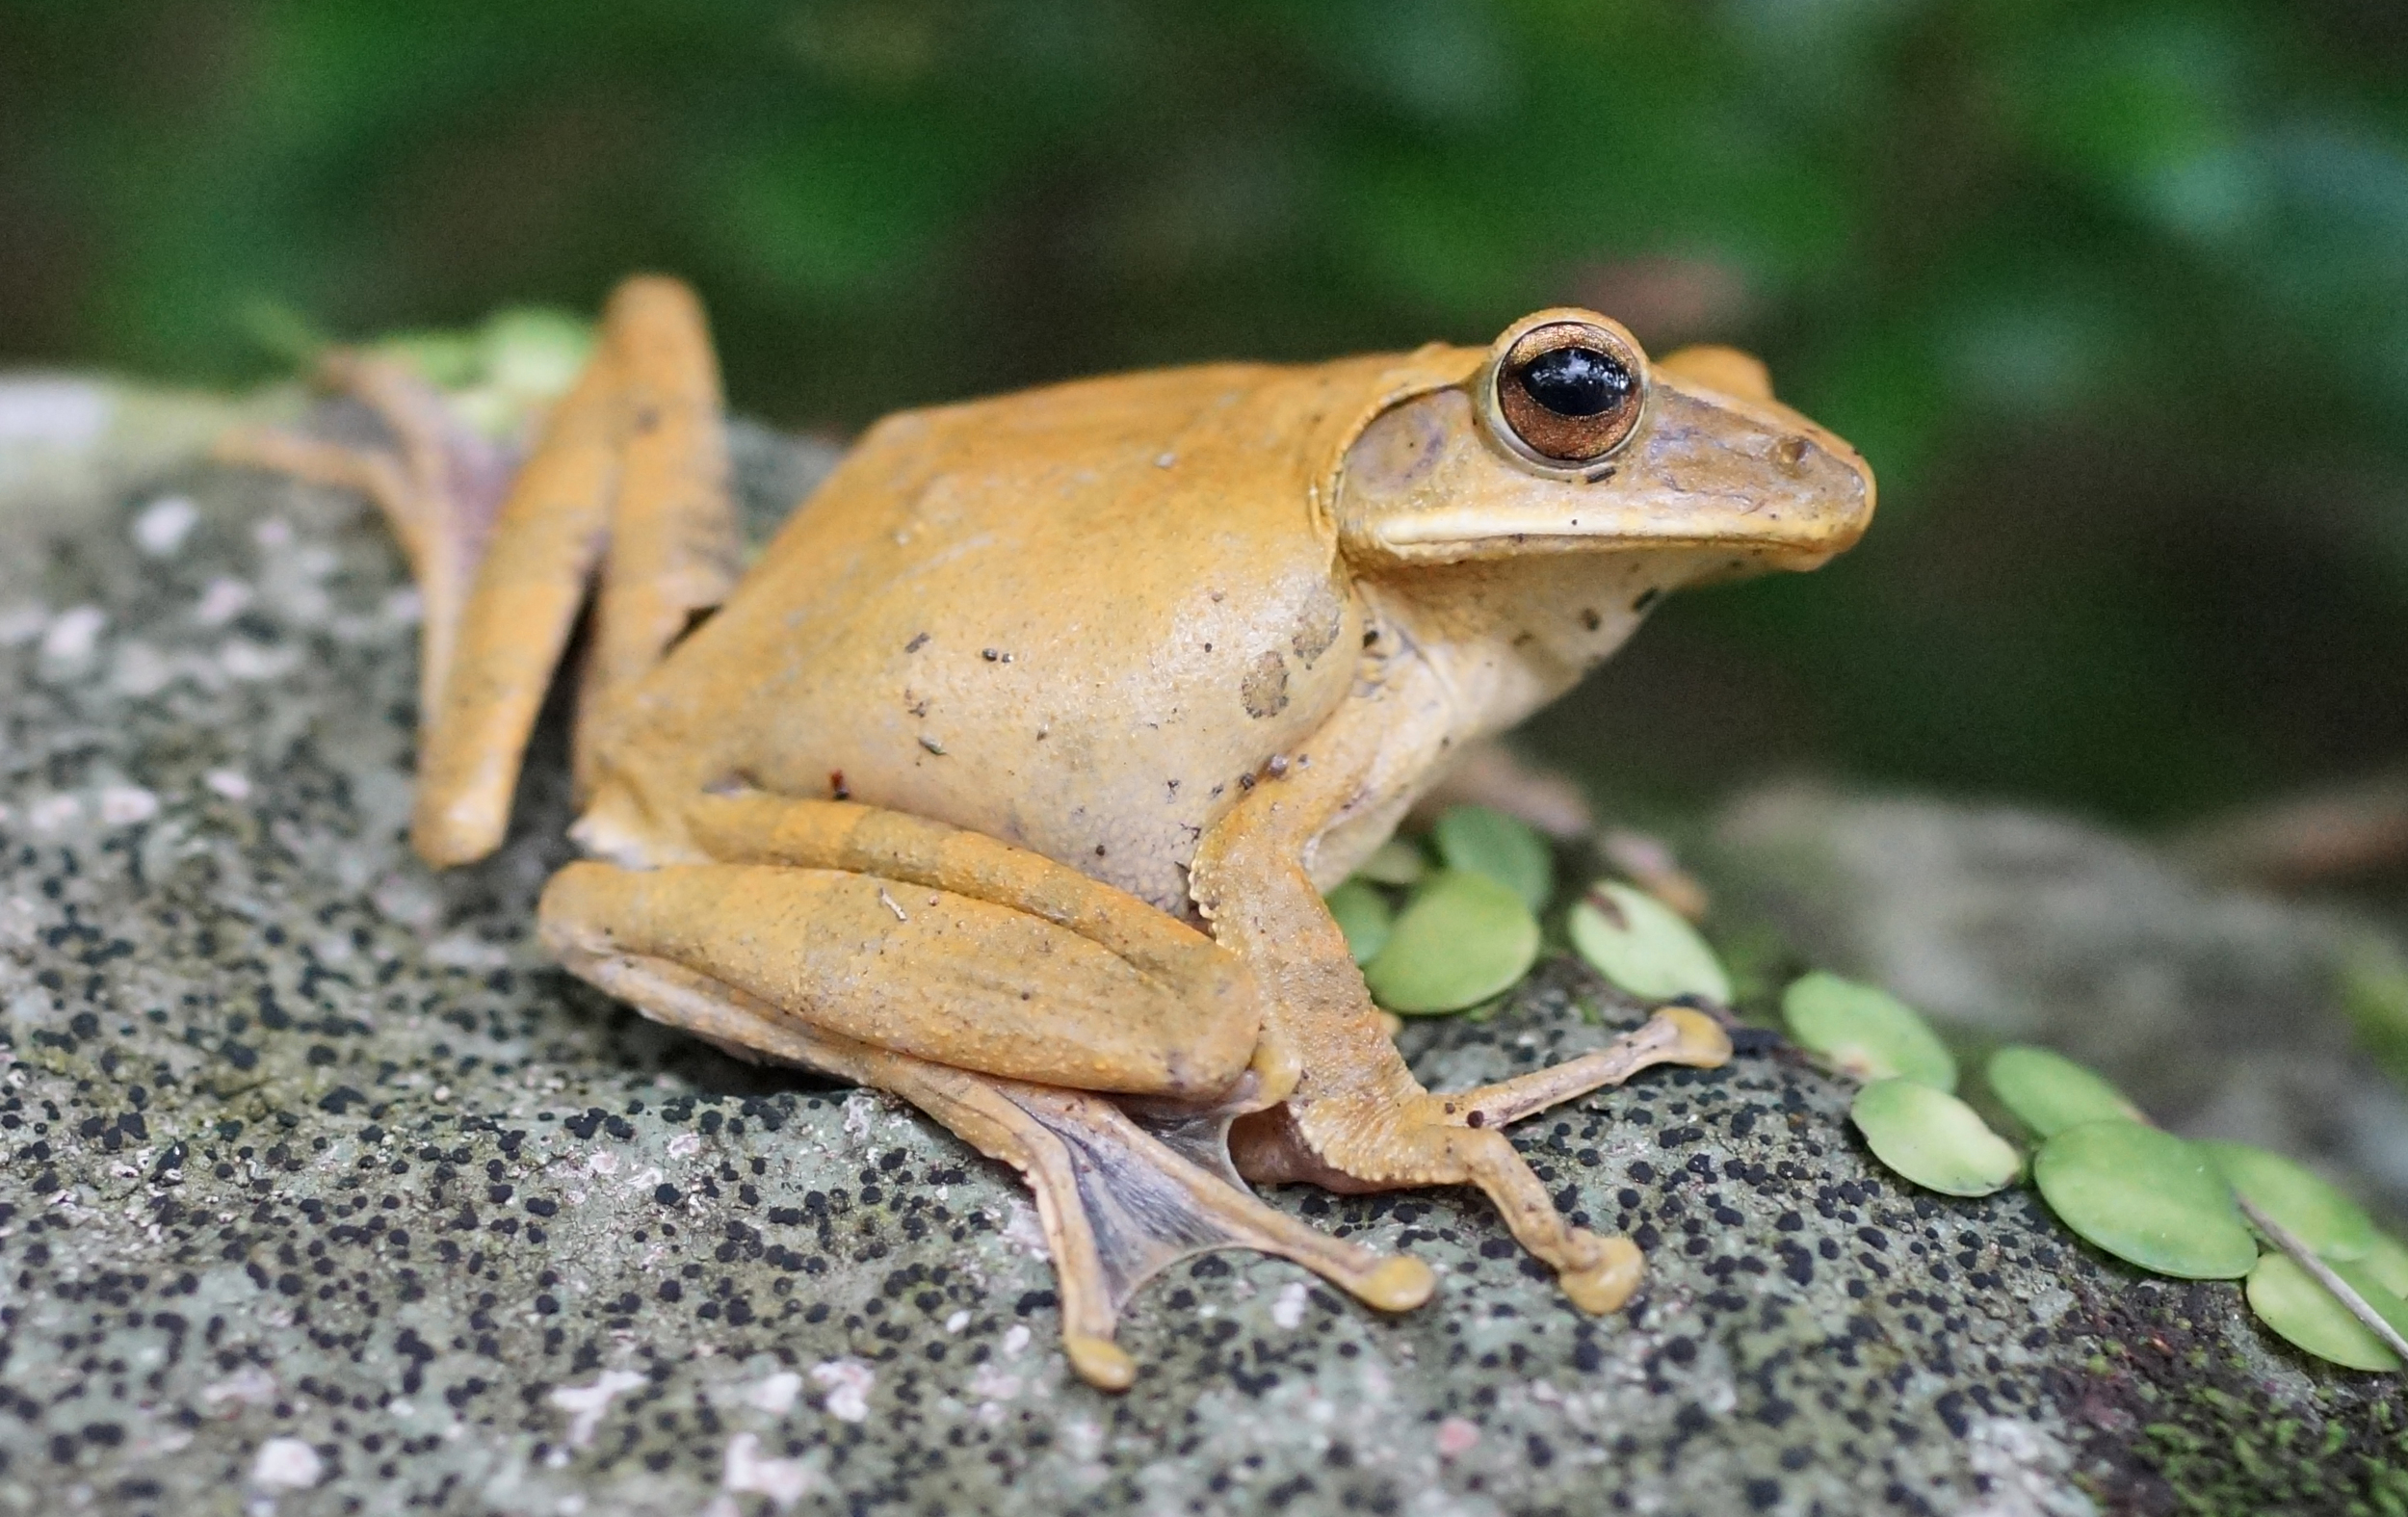 One of my rare shots of a frog in the wild, I spotted this one at the Peak, hopefully it will lead a long and happy life and not end up in someone's pot! -